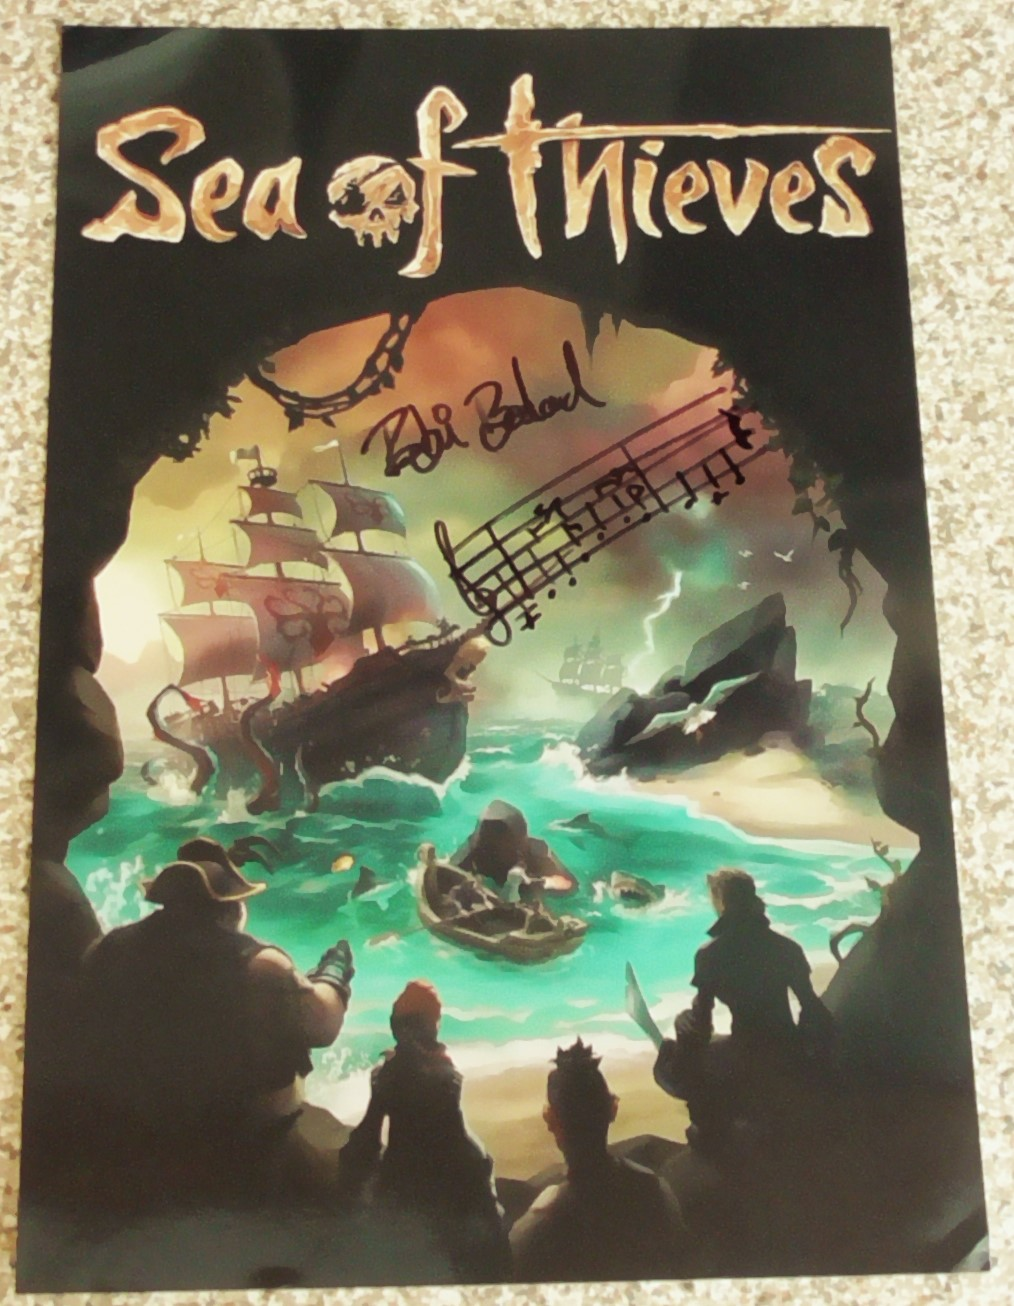 Sea of Thieves - Robin Beanland